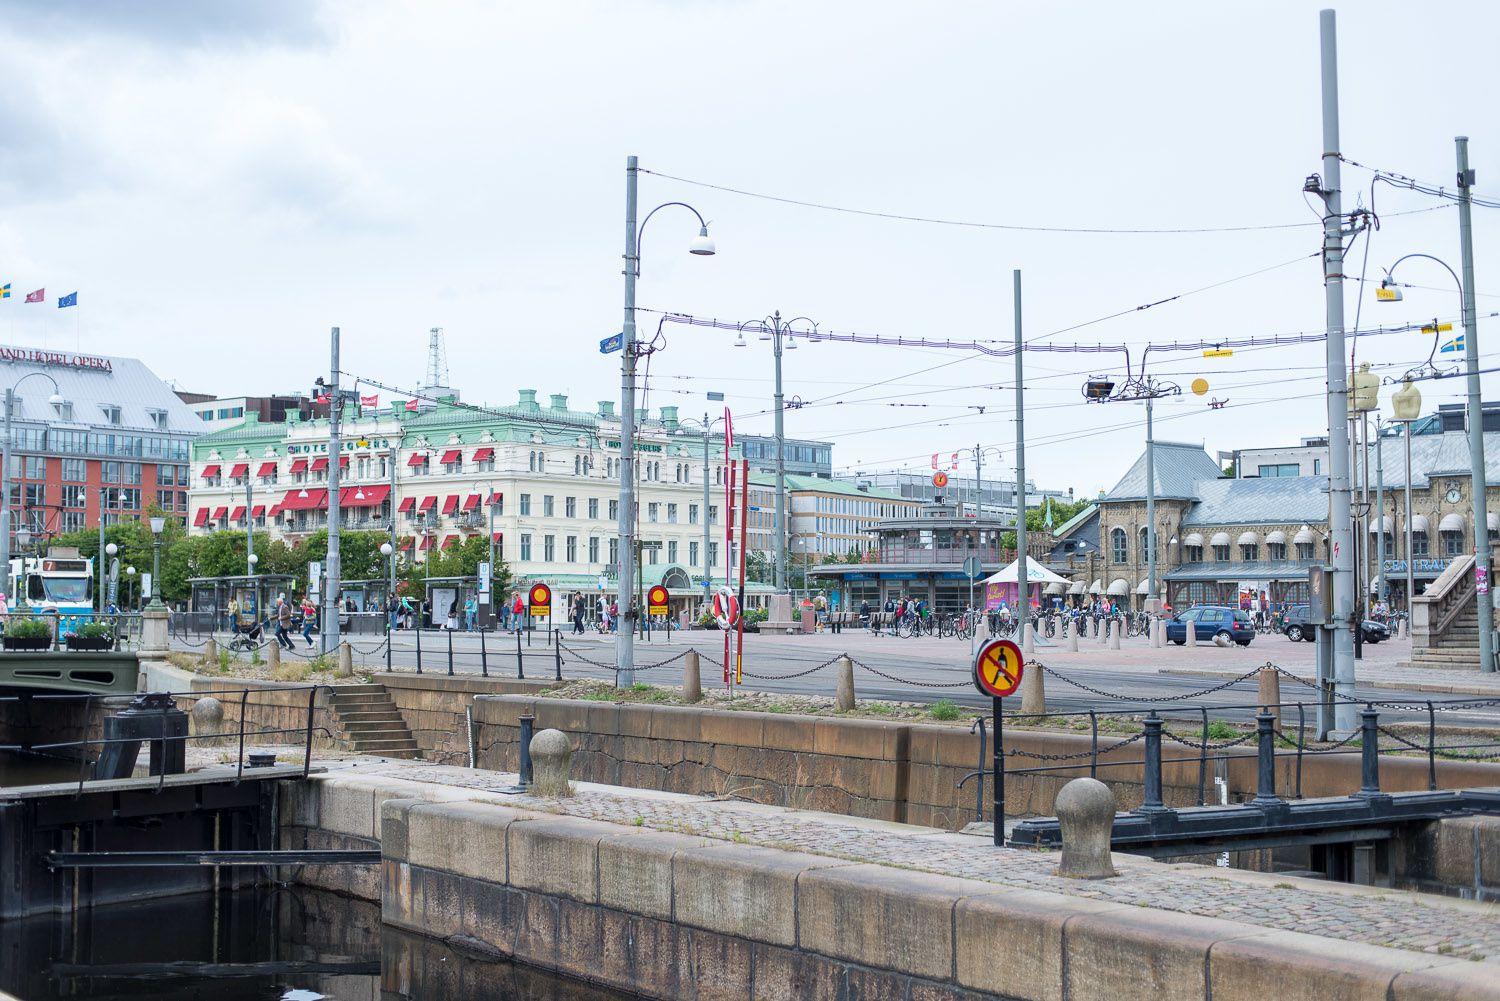 Midsummer in Gothenburg, Sweden